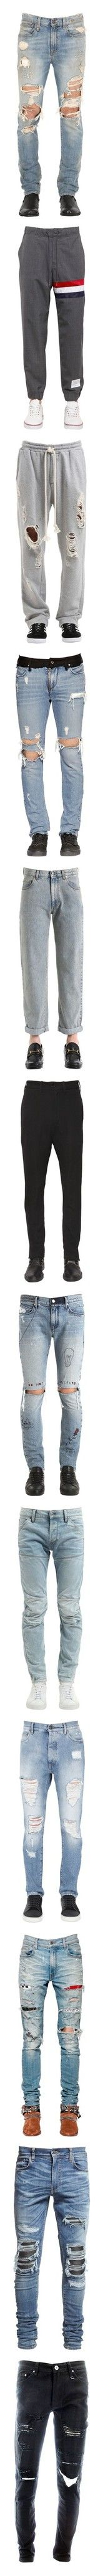 """""""B. Male"""" by powergirls-officele ❤ liked on Polyvore featuring men's fashion, men's clothing, men's jeans, jeans, light blue, mens destroyed jeans, mens ripped jeans, mens jeans, mens distressed jeans and mens faded jeans"""